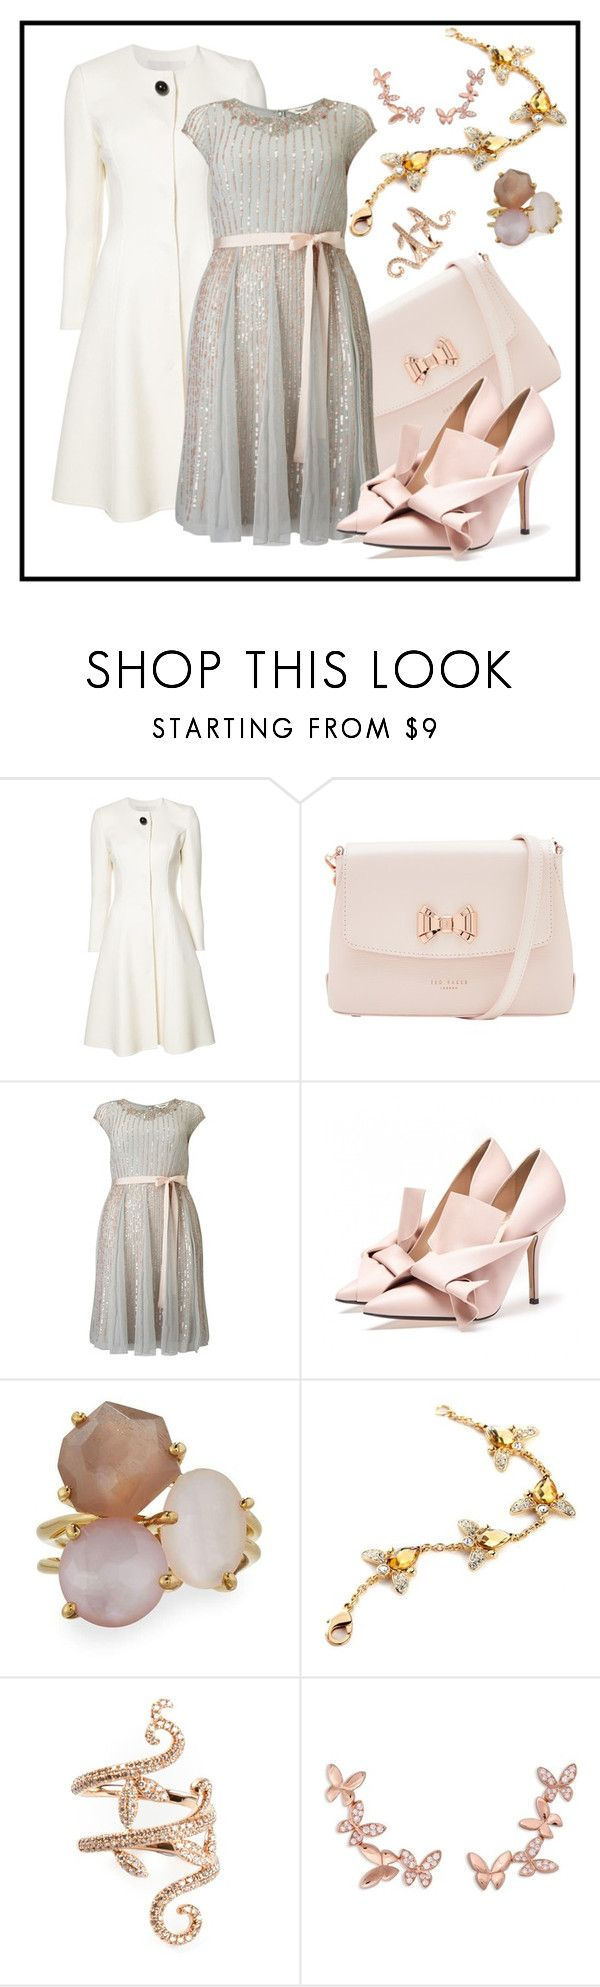 """#Stylish Turkish ♥ Polyvorians"" by edin-levic ❤ liked on Polyvore featuring Carolina Herrera, Ted Baker, Studio 8, Ippolita, Elise Dray and Anyallerie"